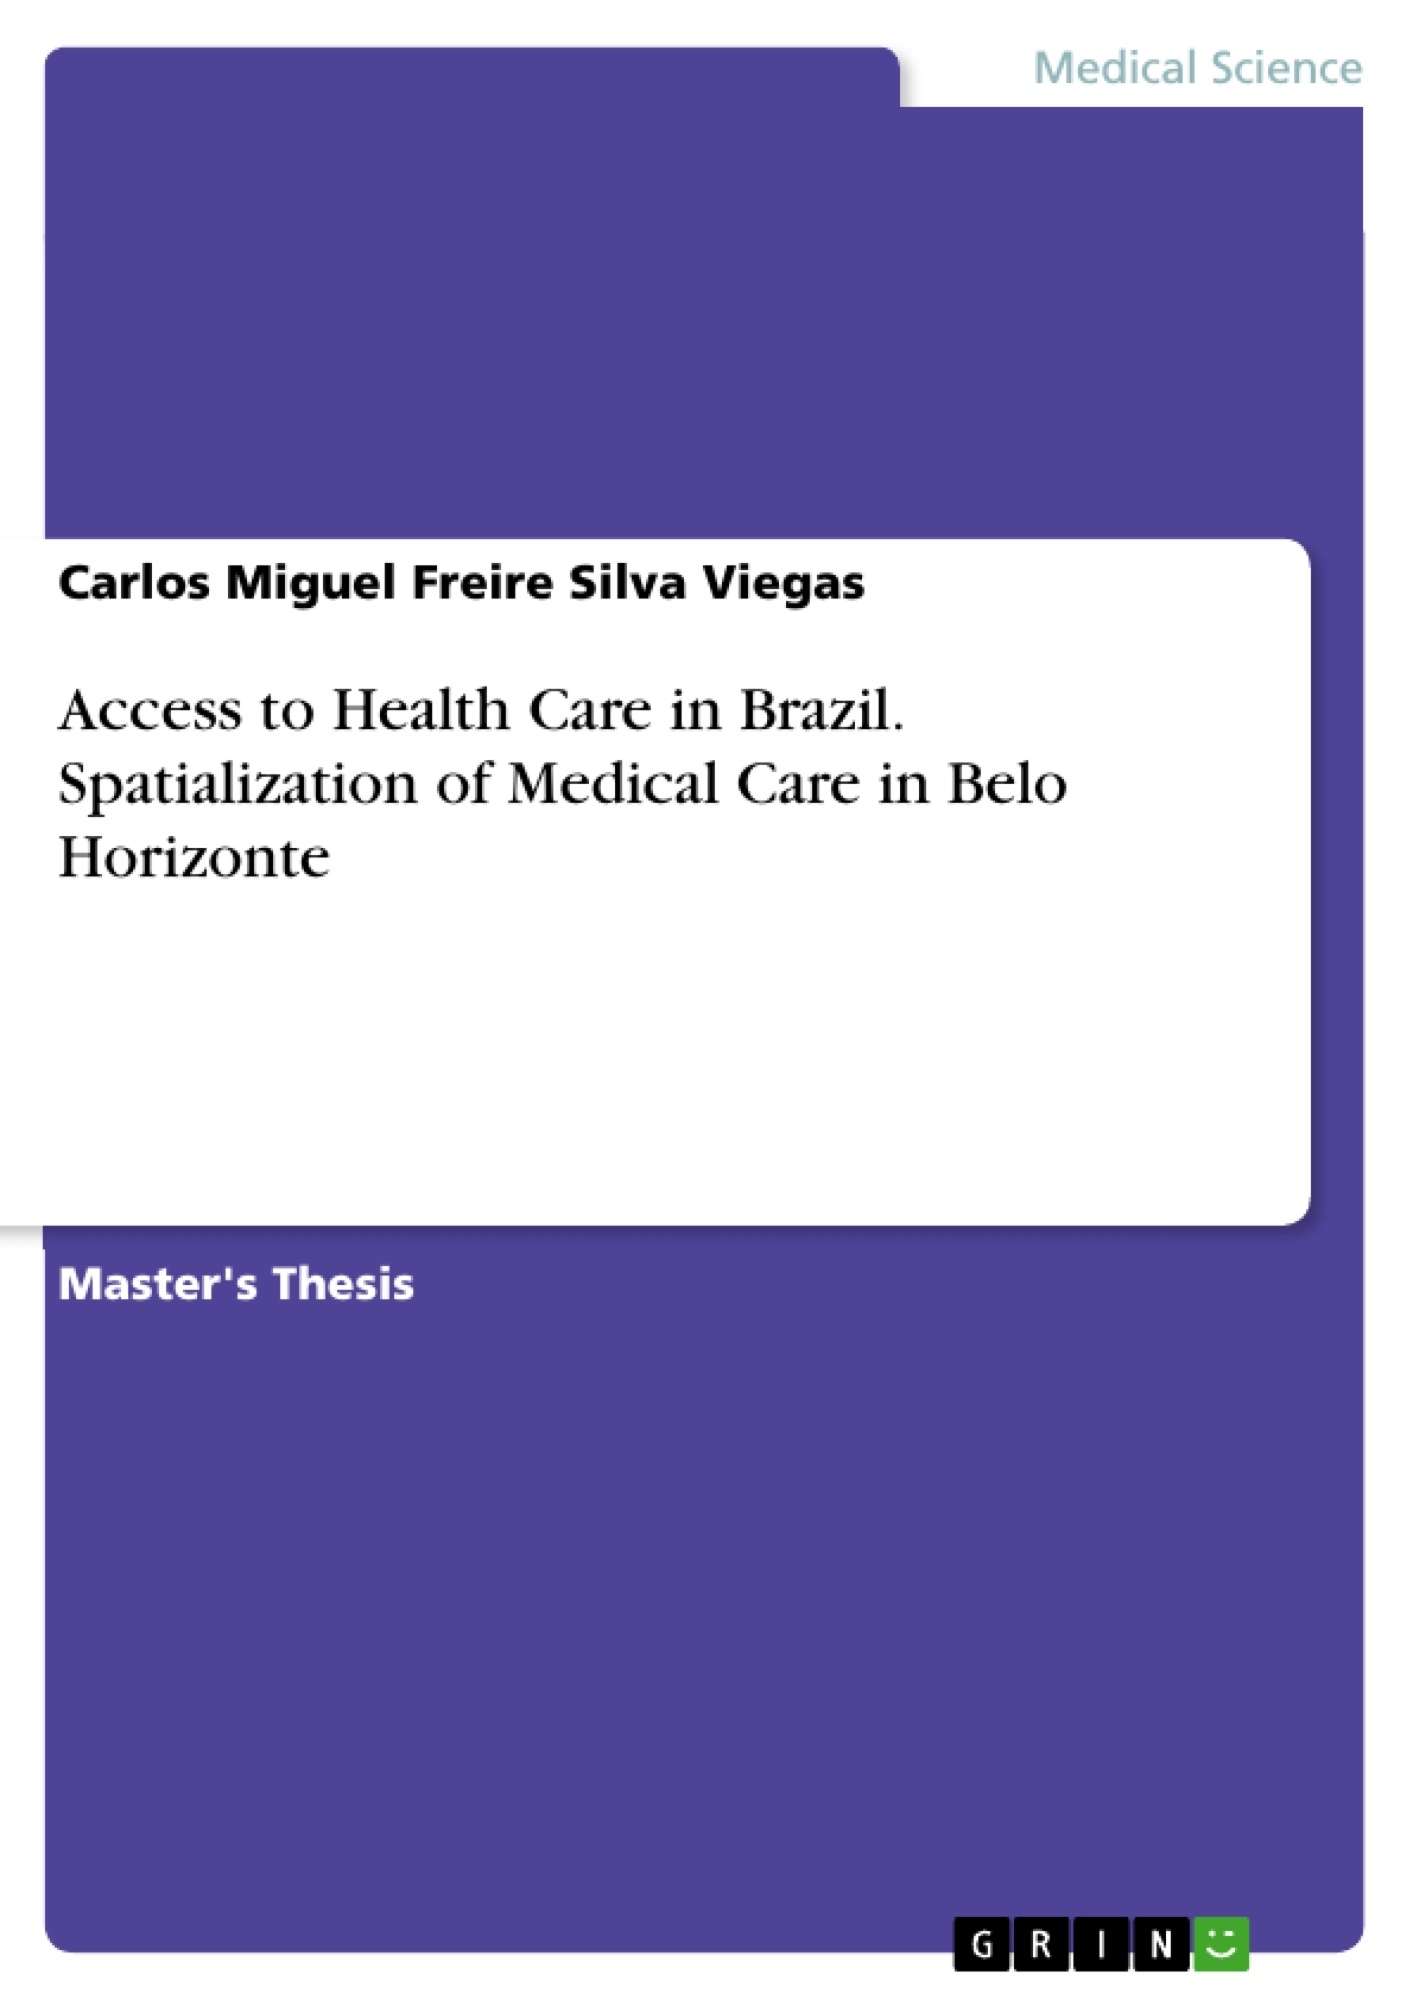 Title: Access to Health Care in Brazil. Spatialization of Medical Care in Belo Horizonte